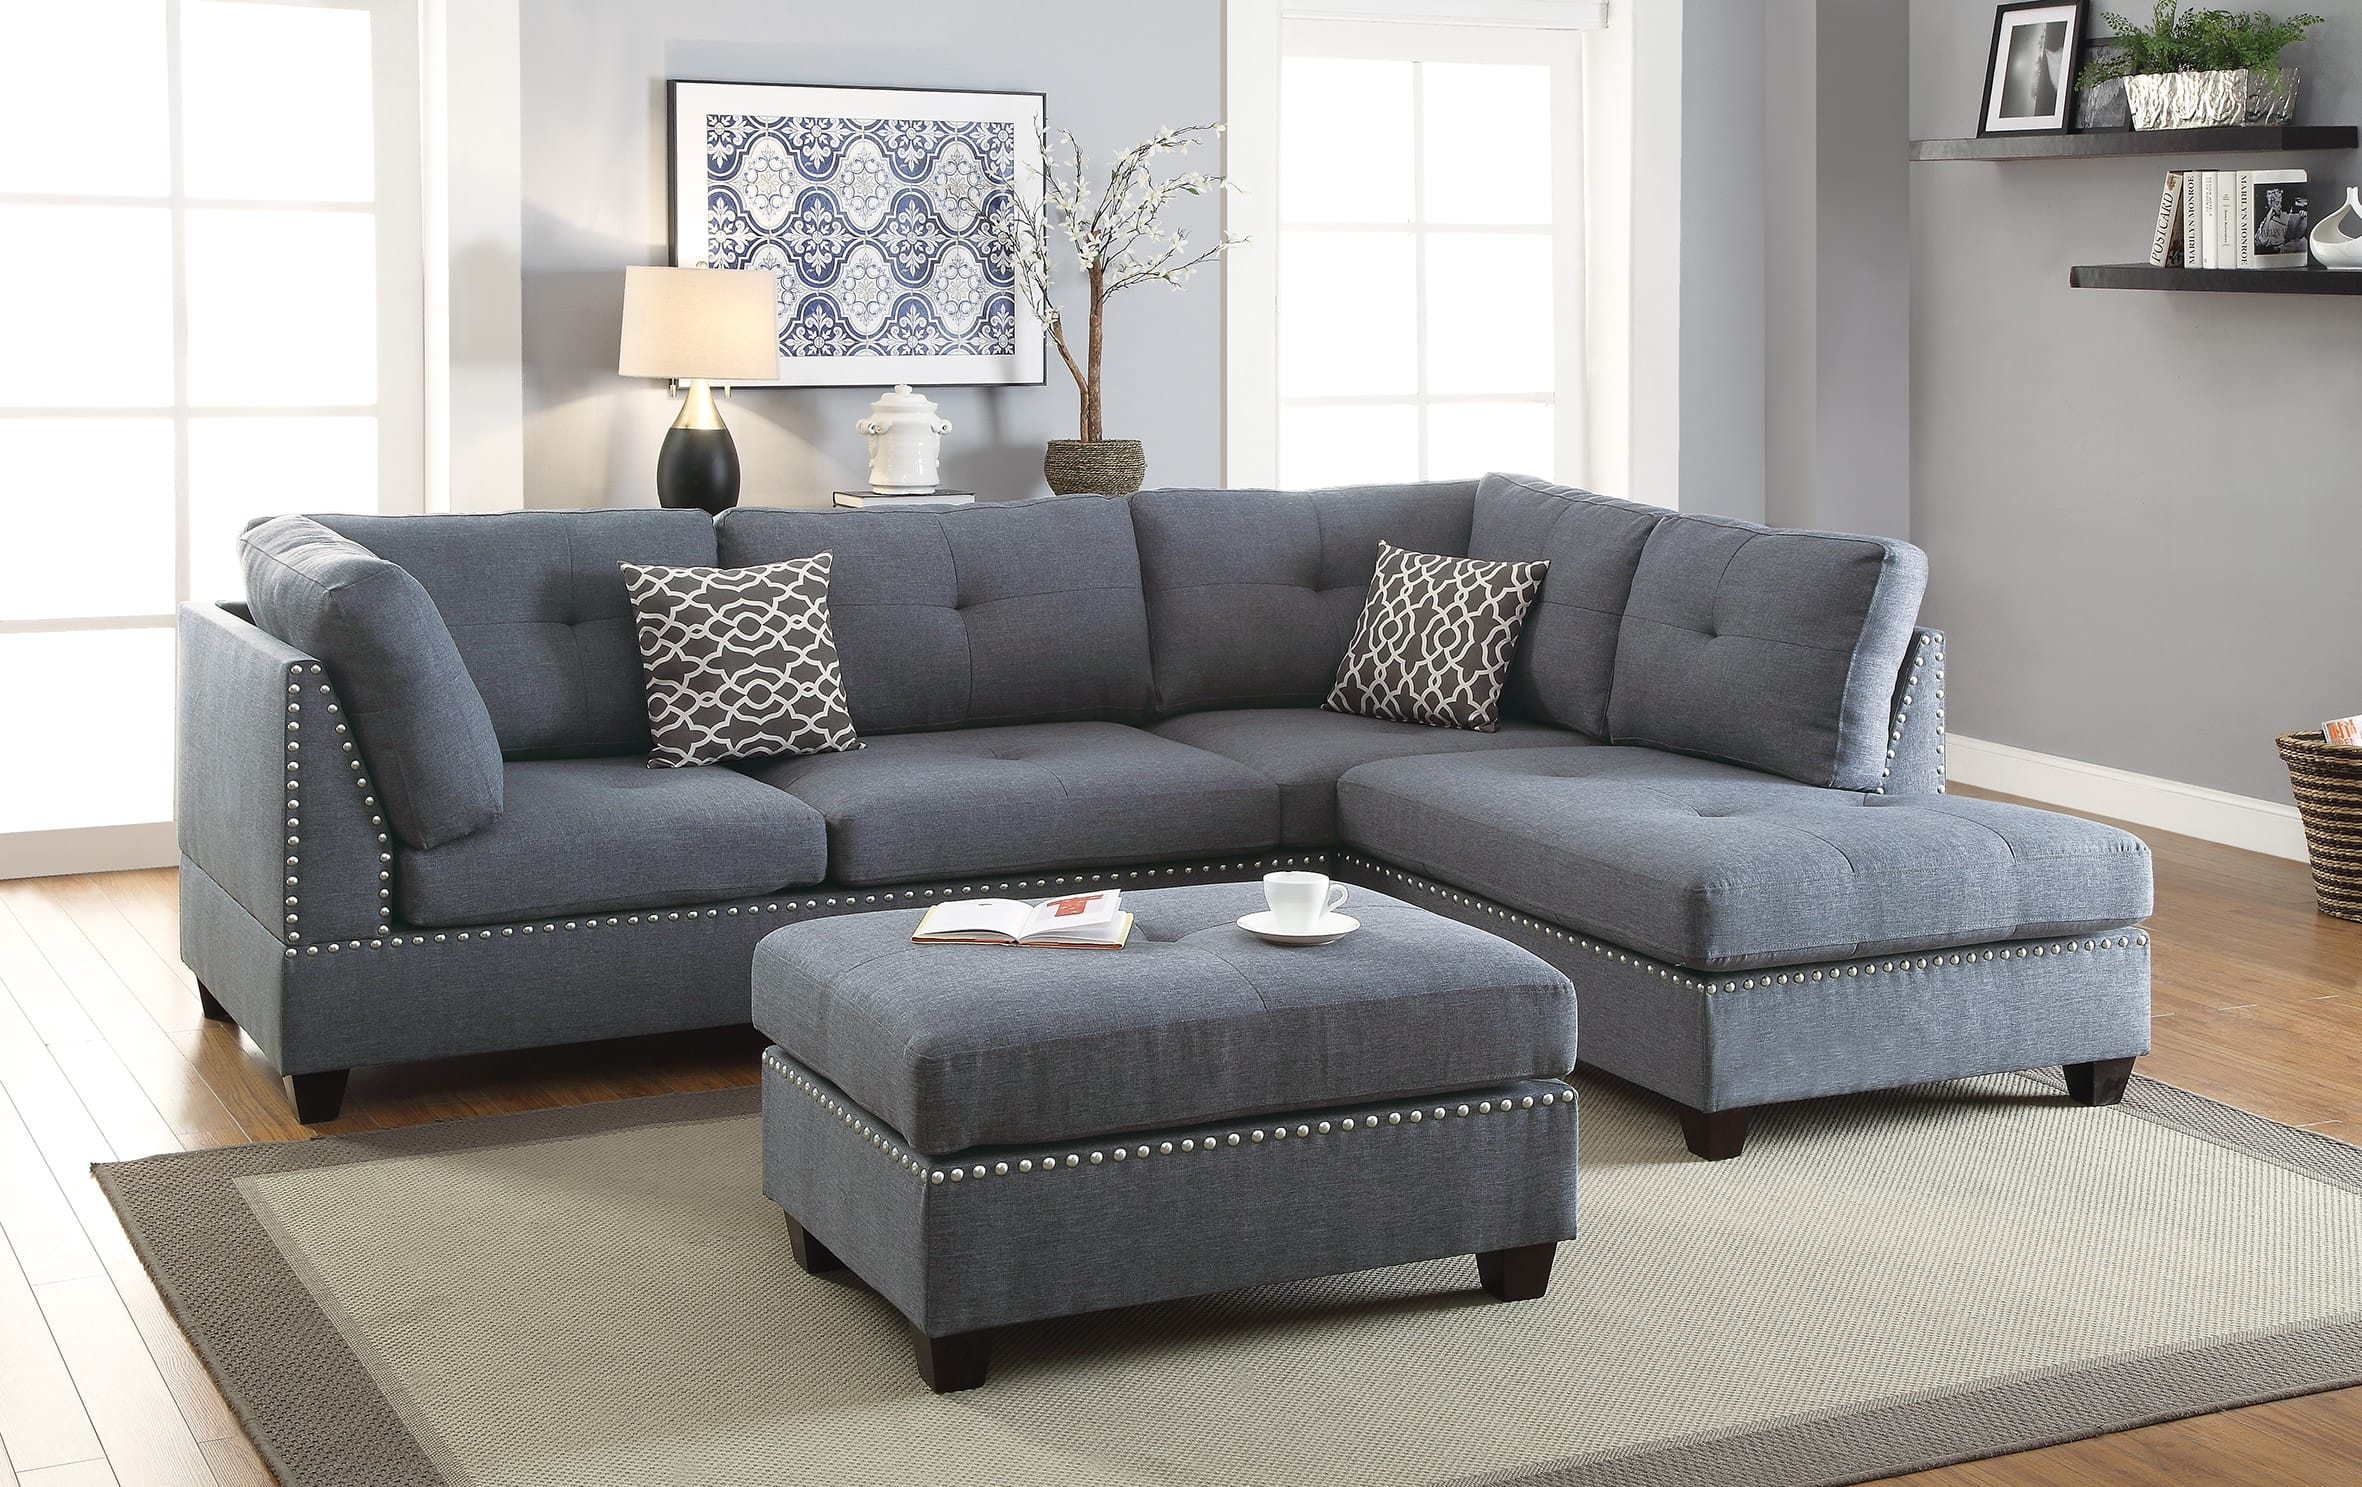 f6975 blue gray 3 pcs sectional sofa set poundex